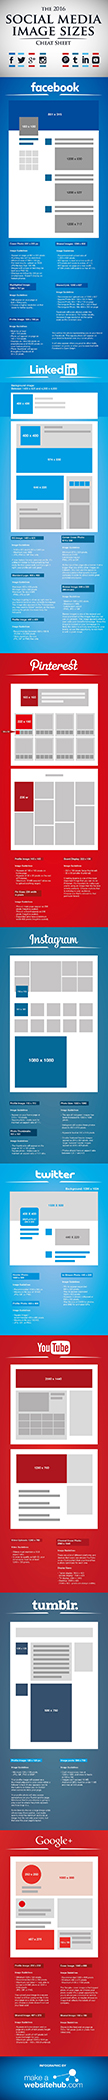 social-image-size-guide_small